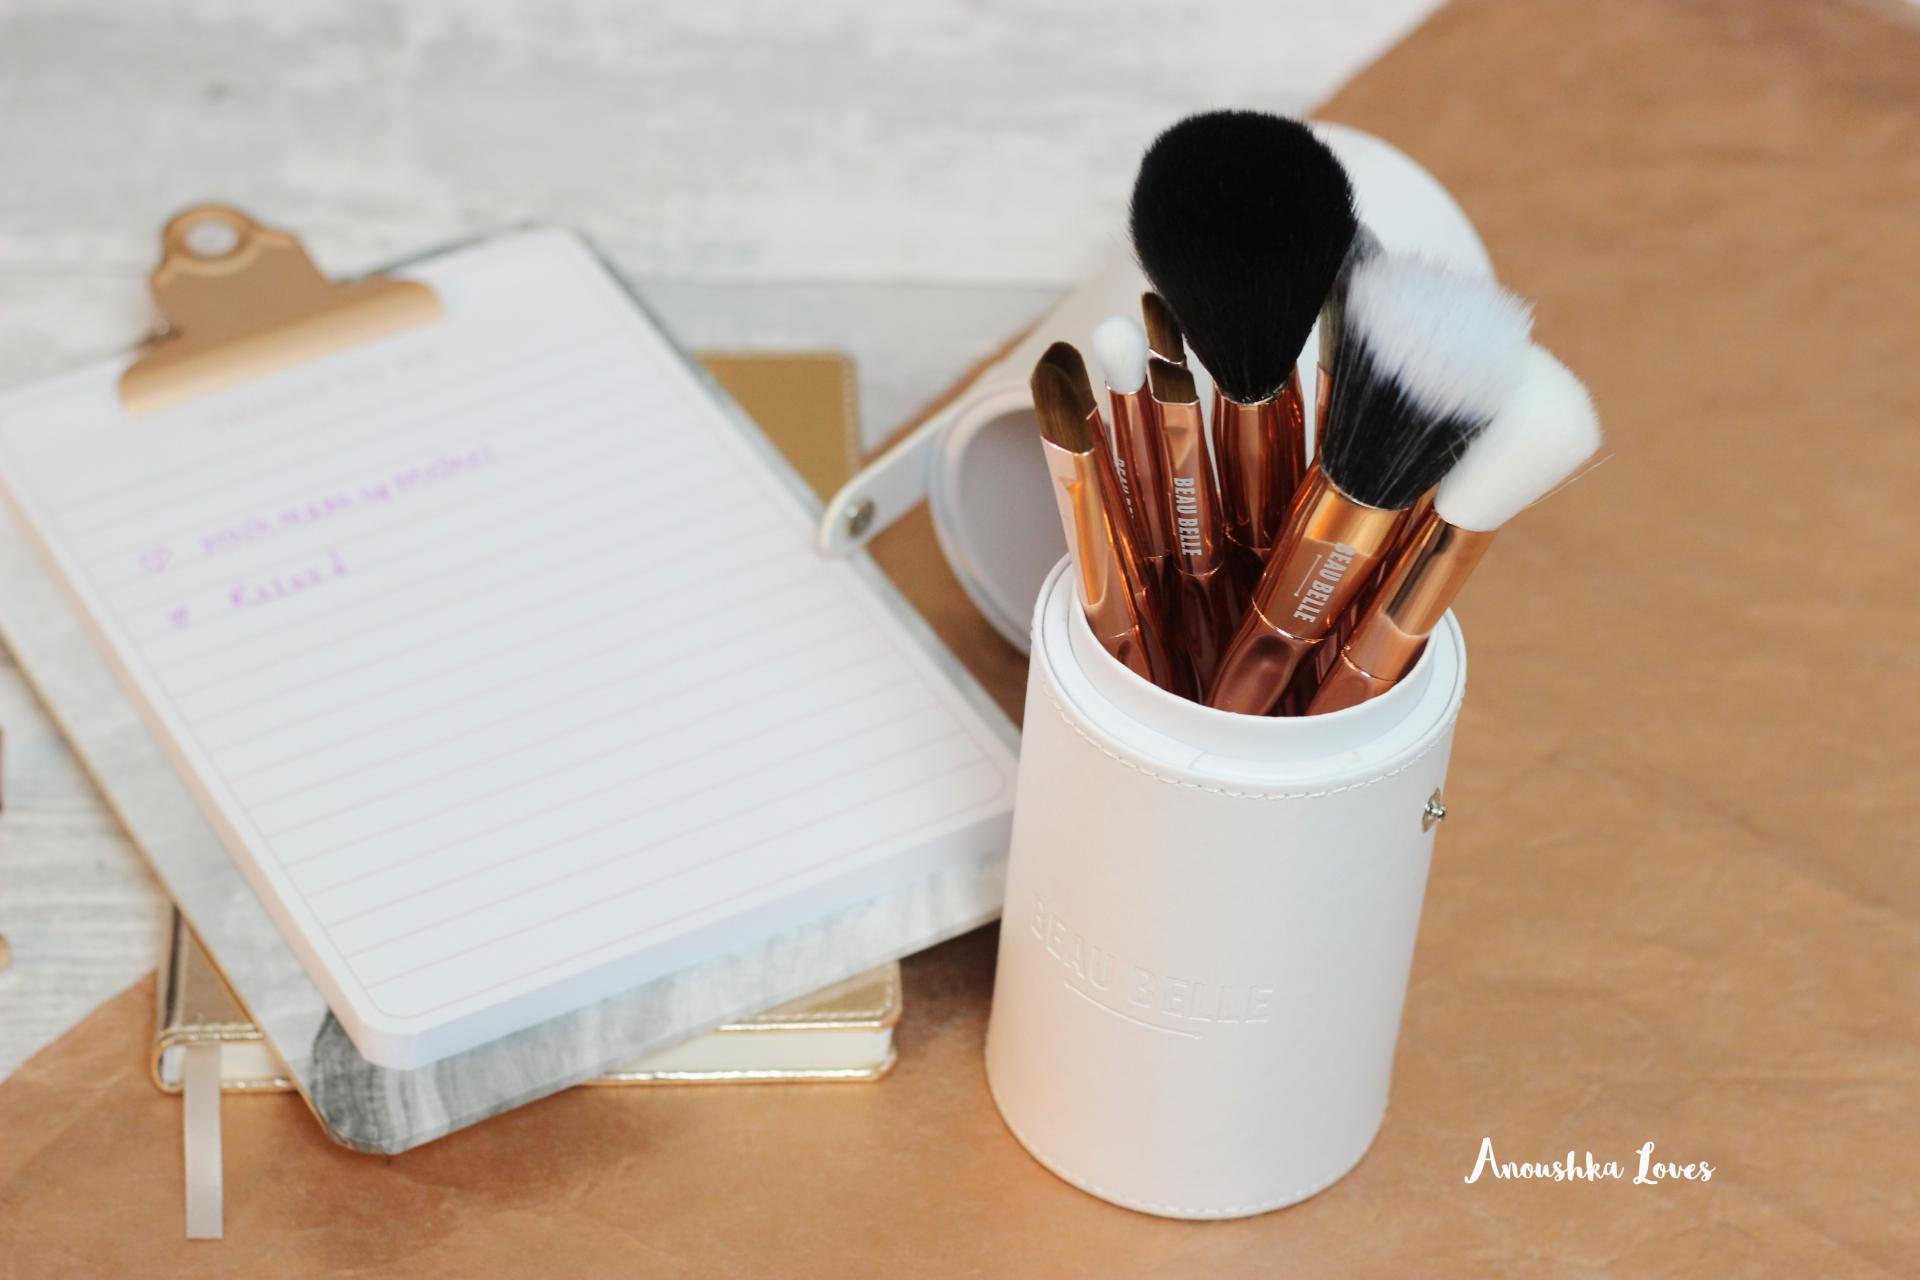 Beau Belle Limited Edition Rose Gold Brush Set